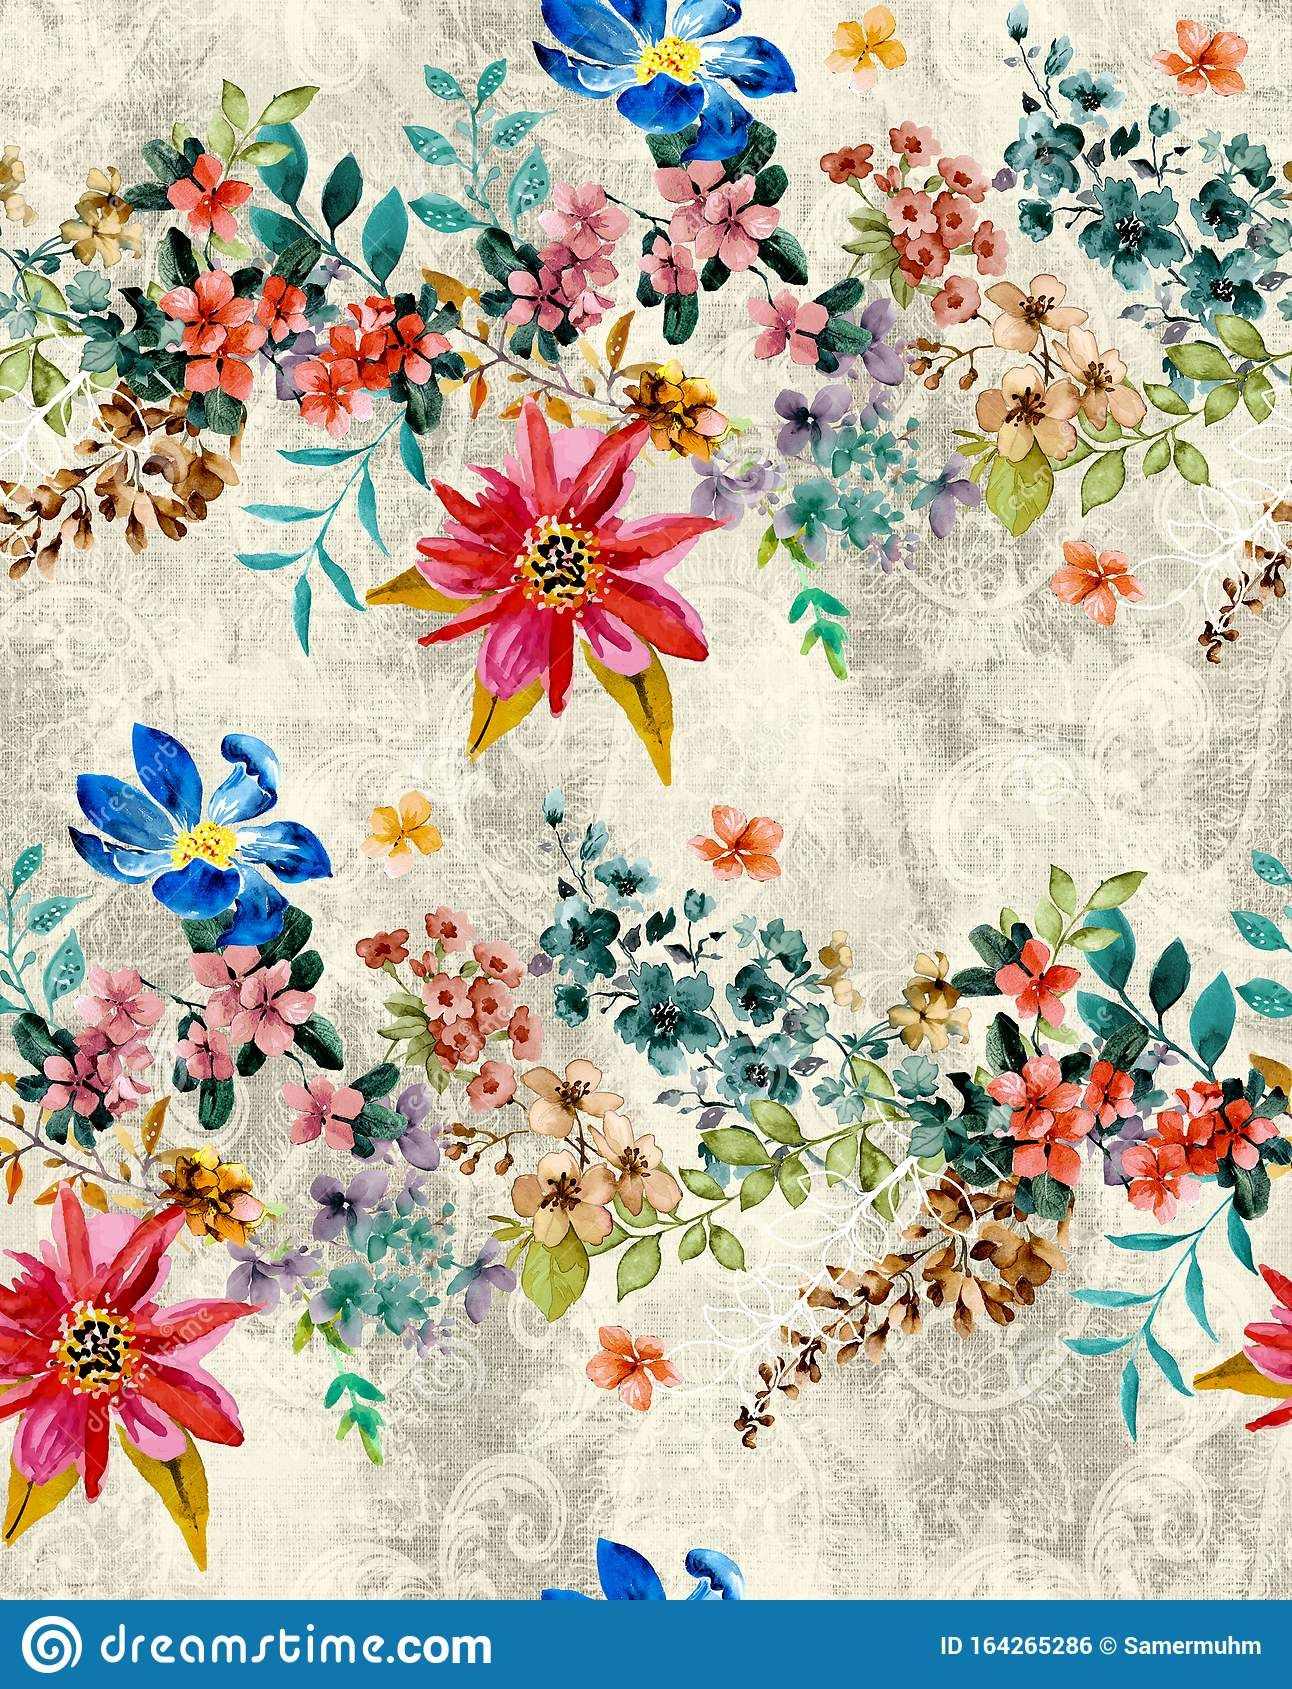 Seamless Floral Pattern With Colorful Flowers And Leaves The